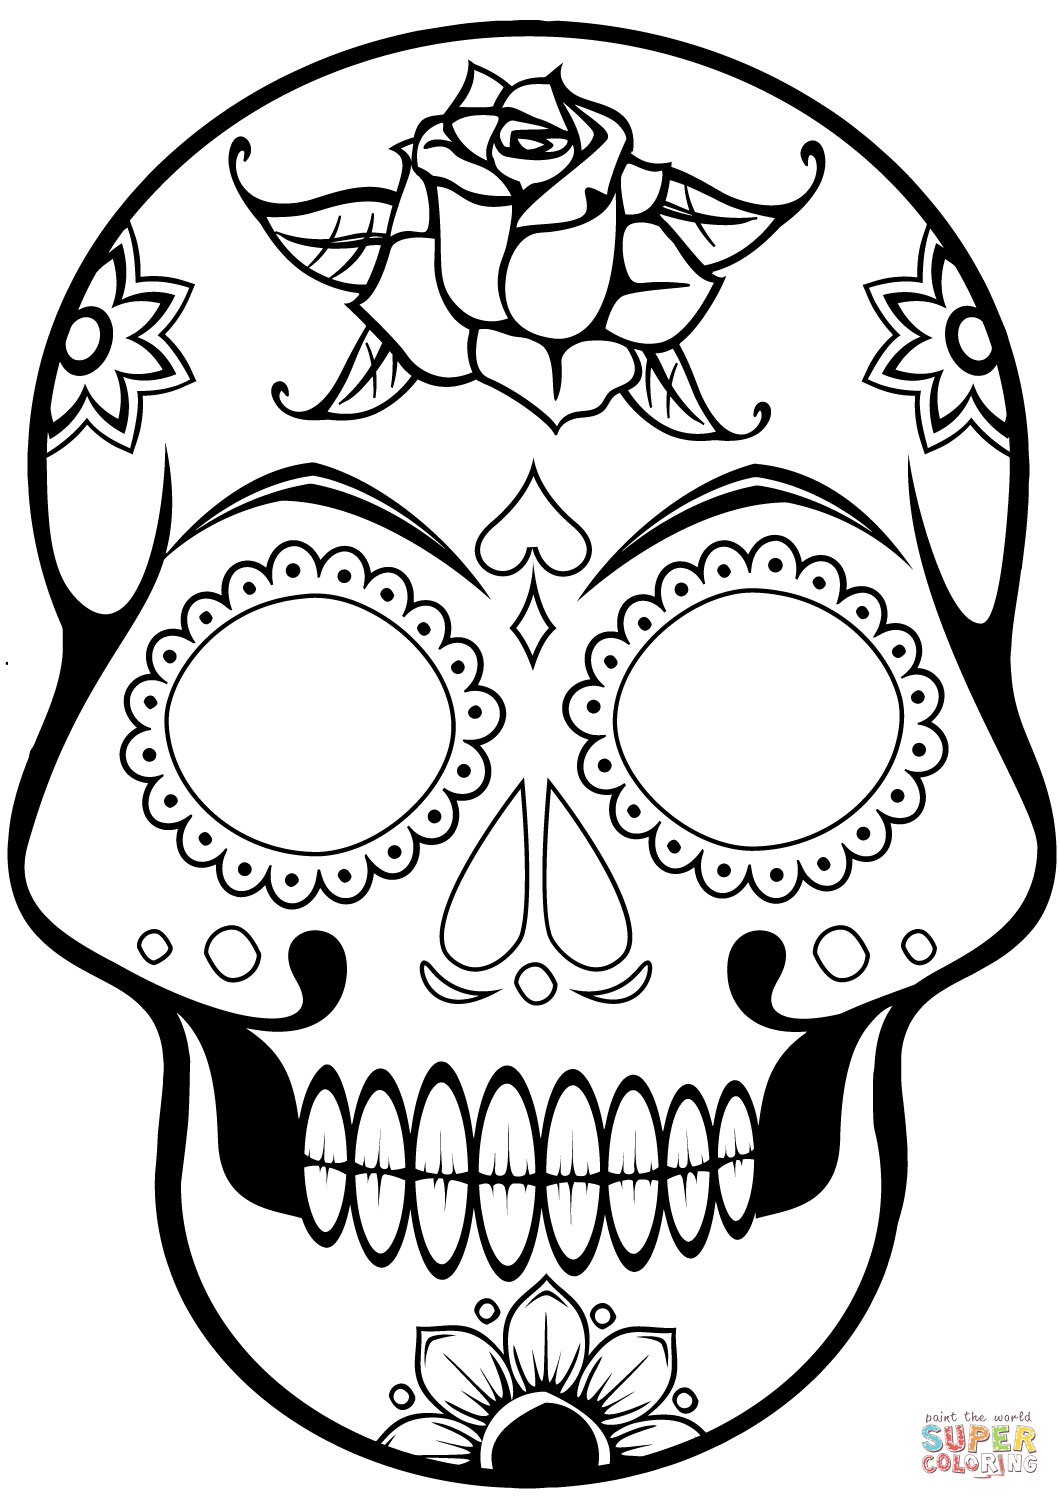 Skull Coloring Pages | Free download best Skull Coloring ...